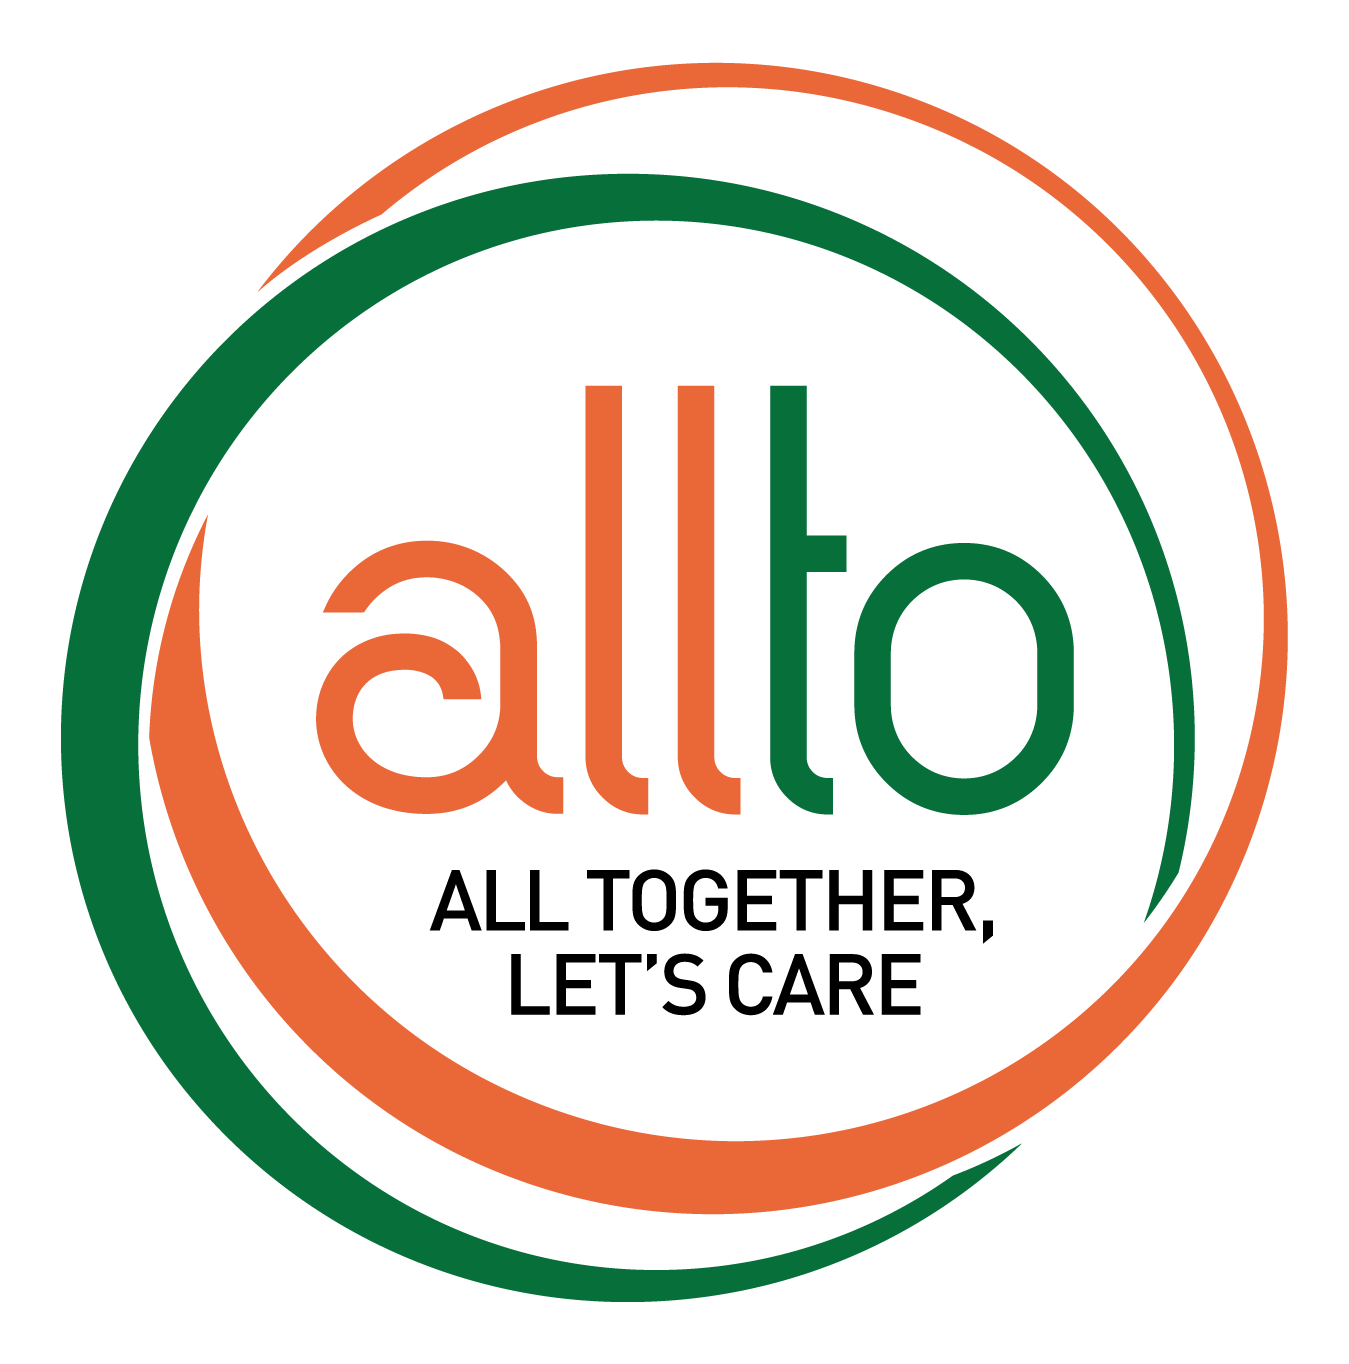 Allto! All together let's share